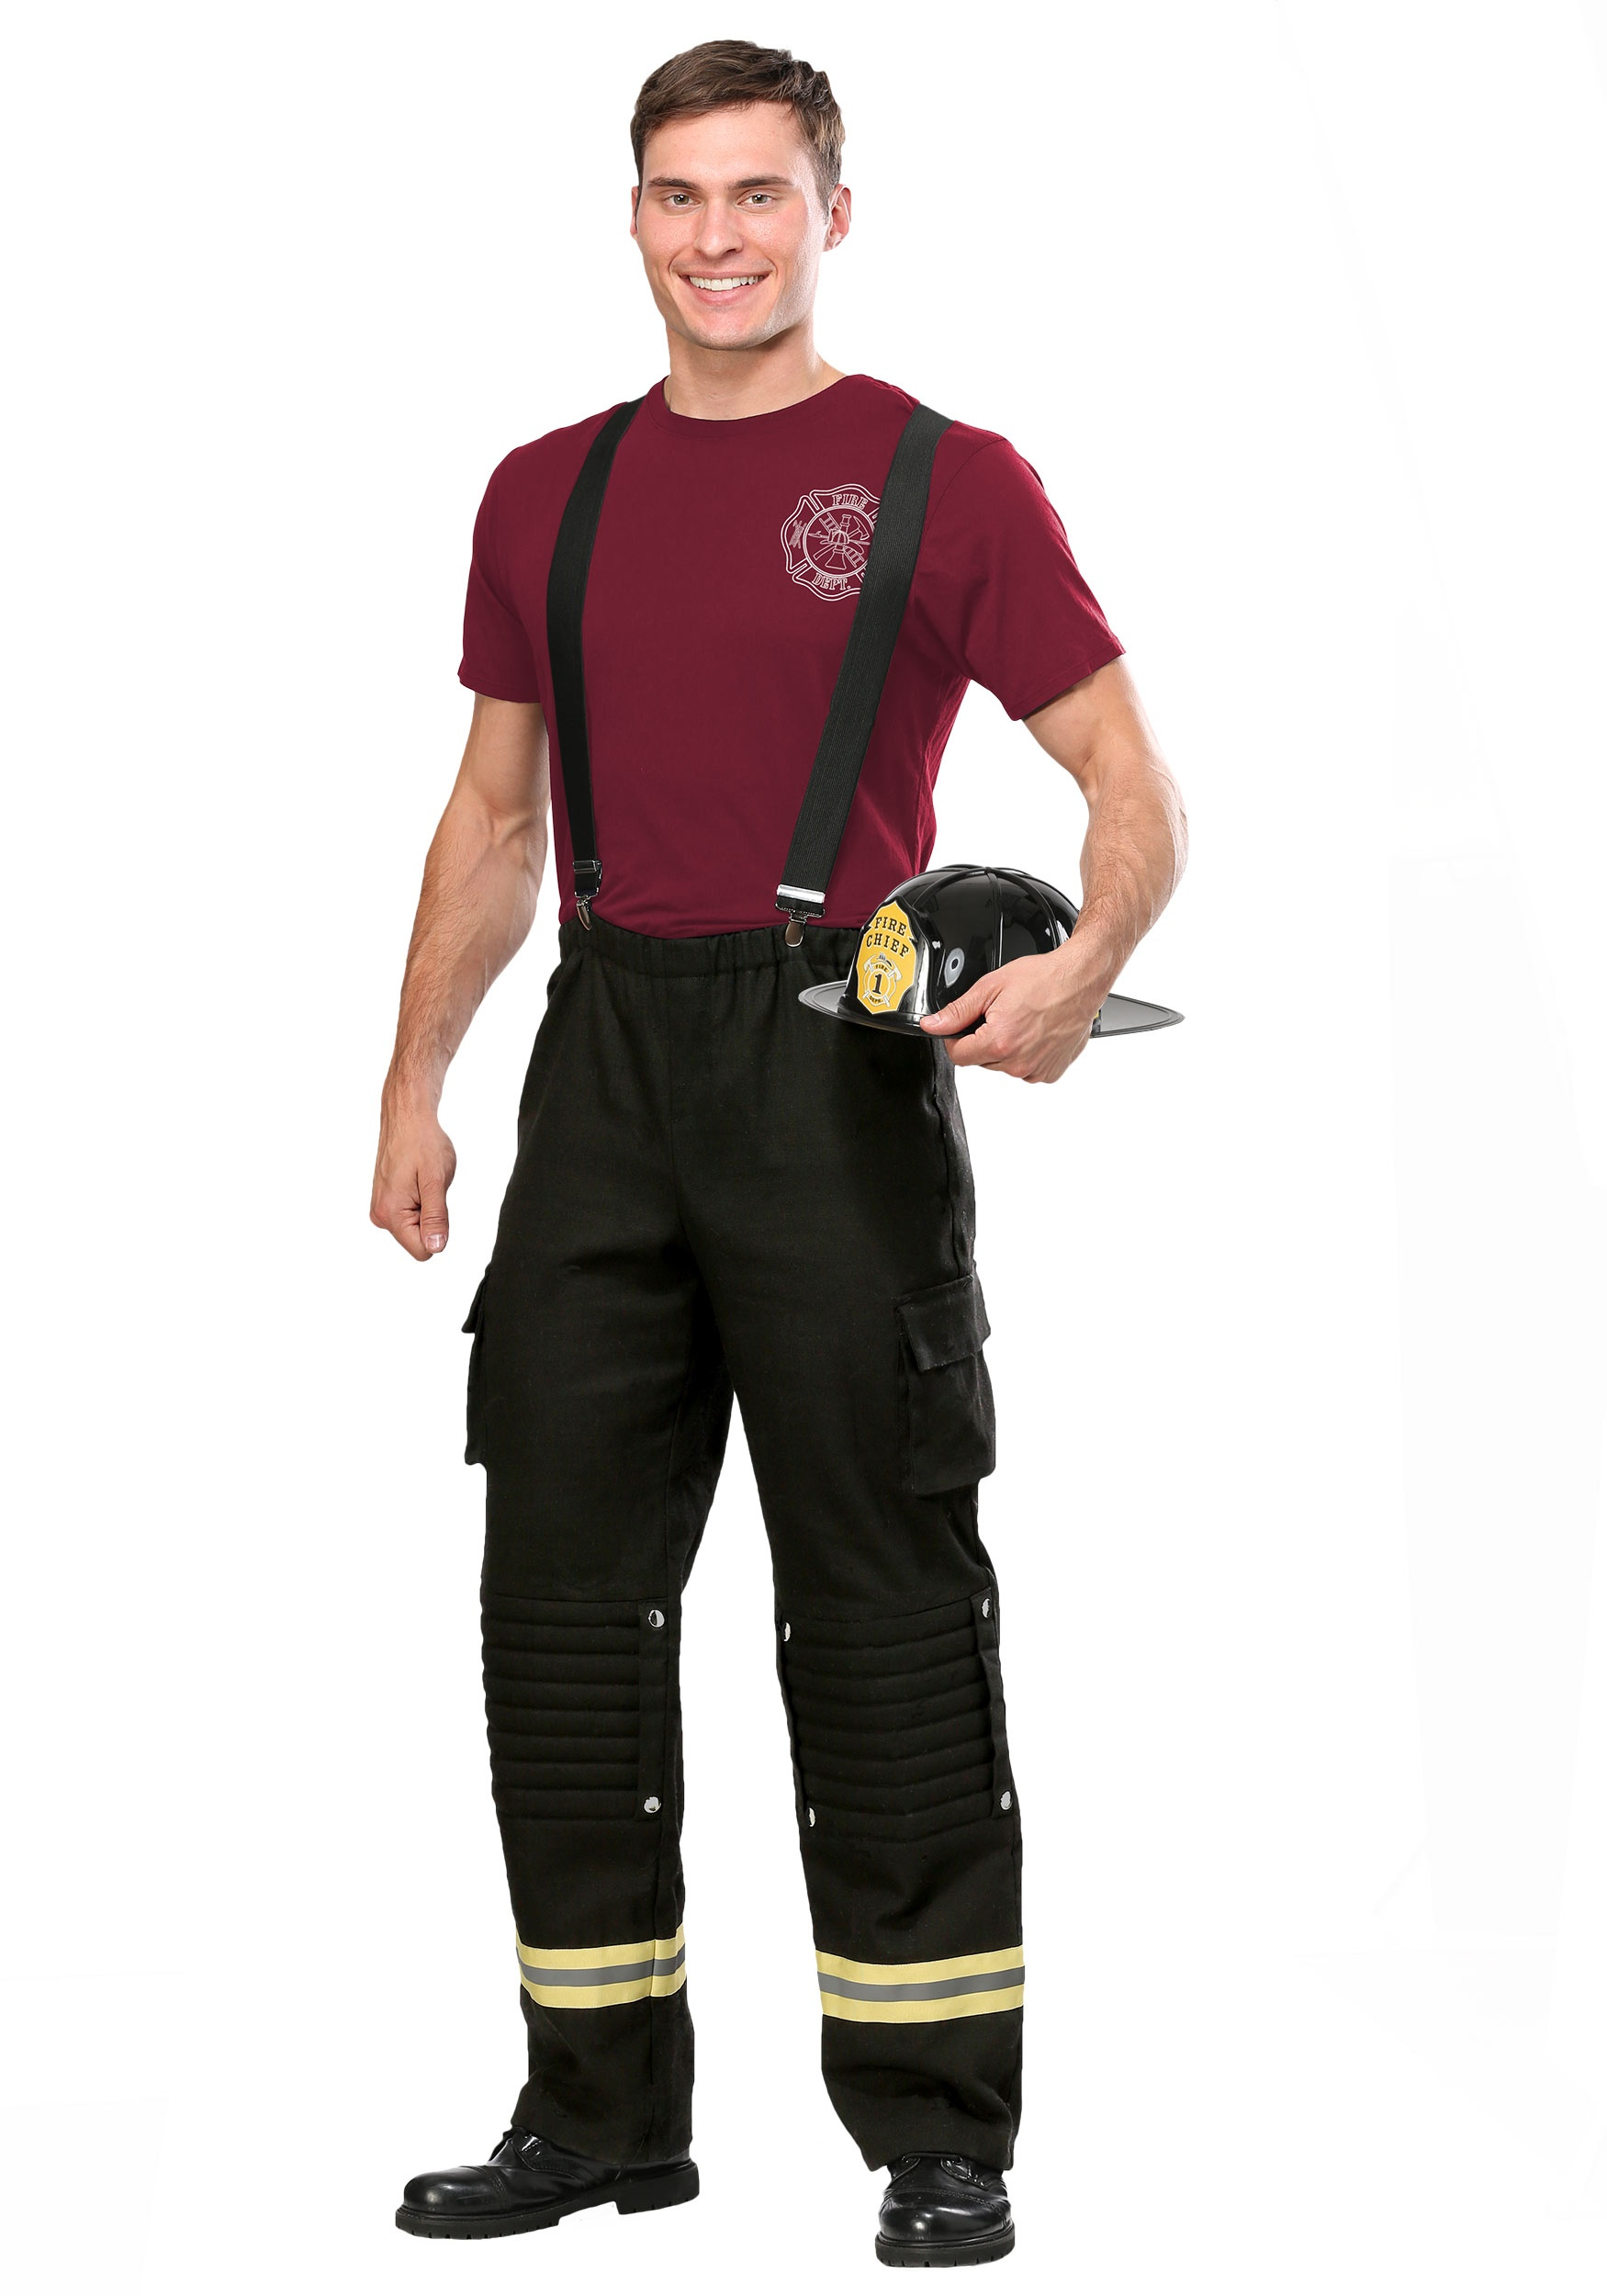 Fire Captain Plus Size Costume for Men 2X